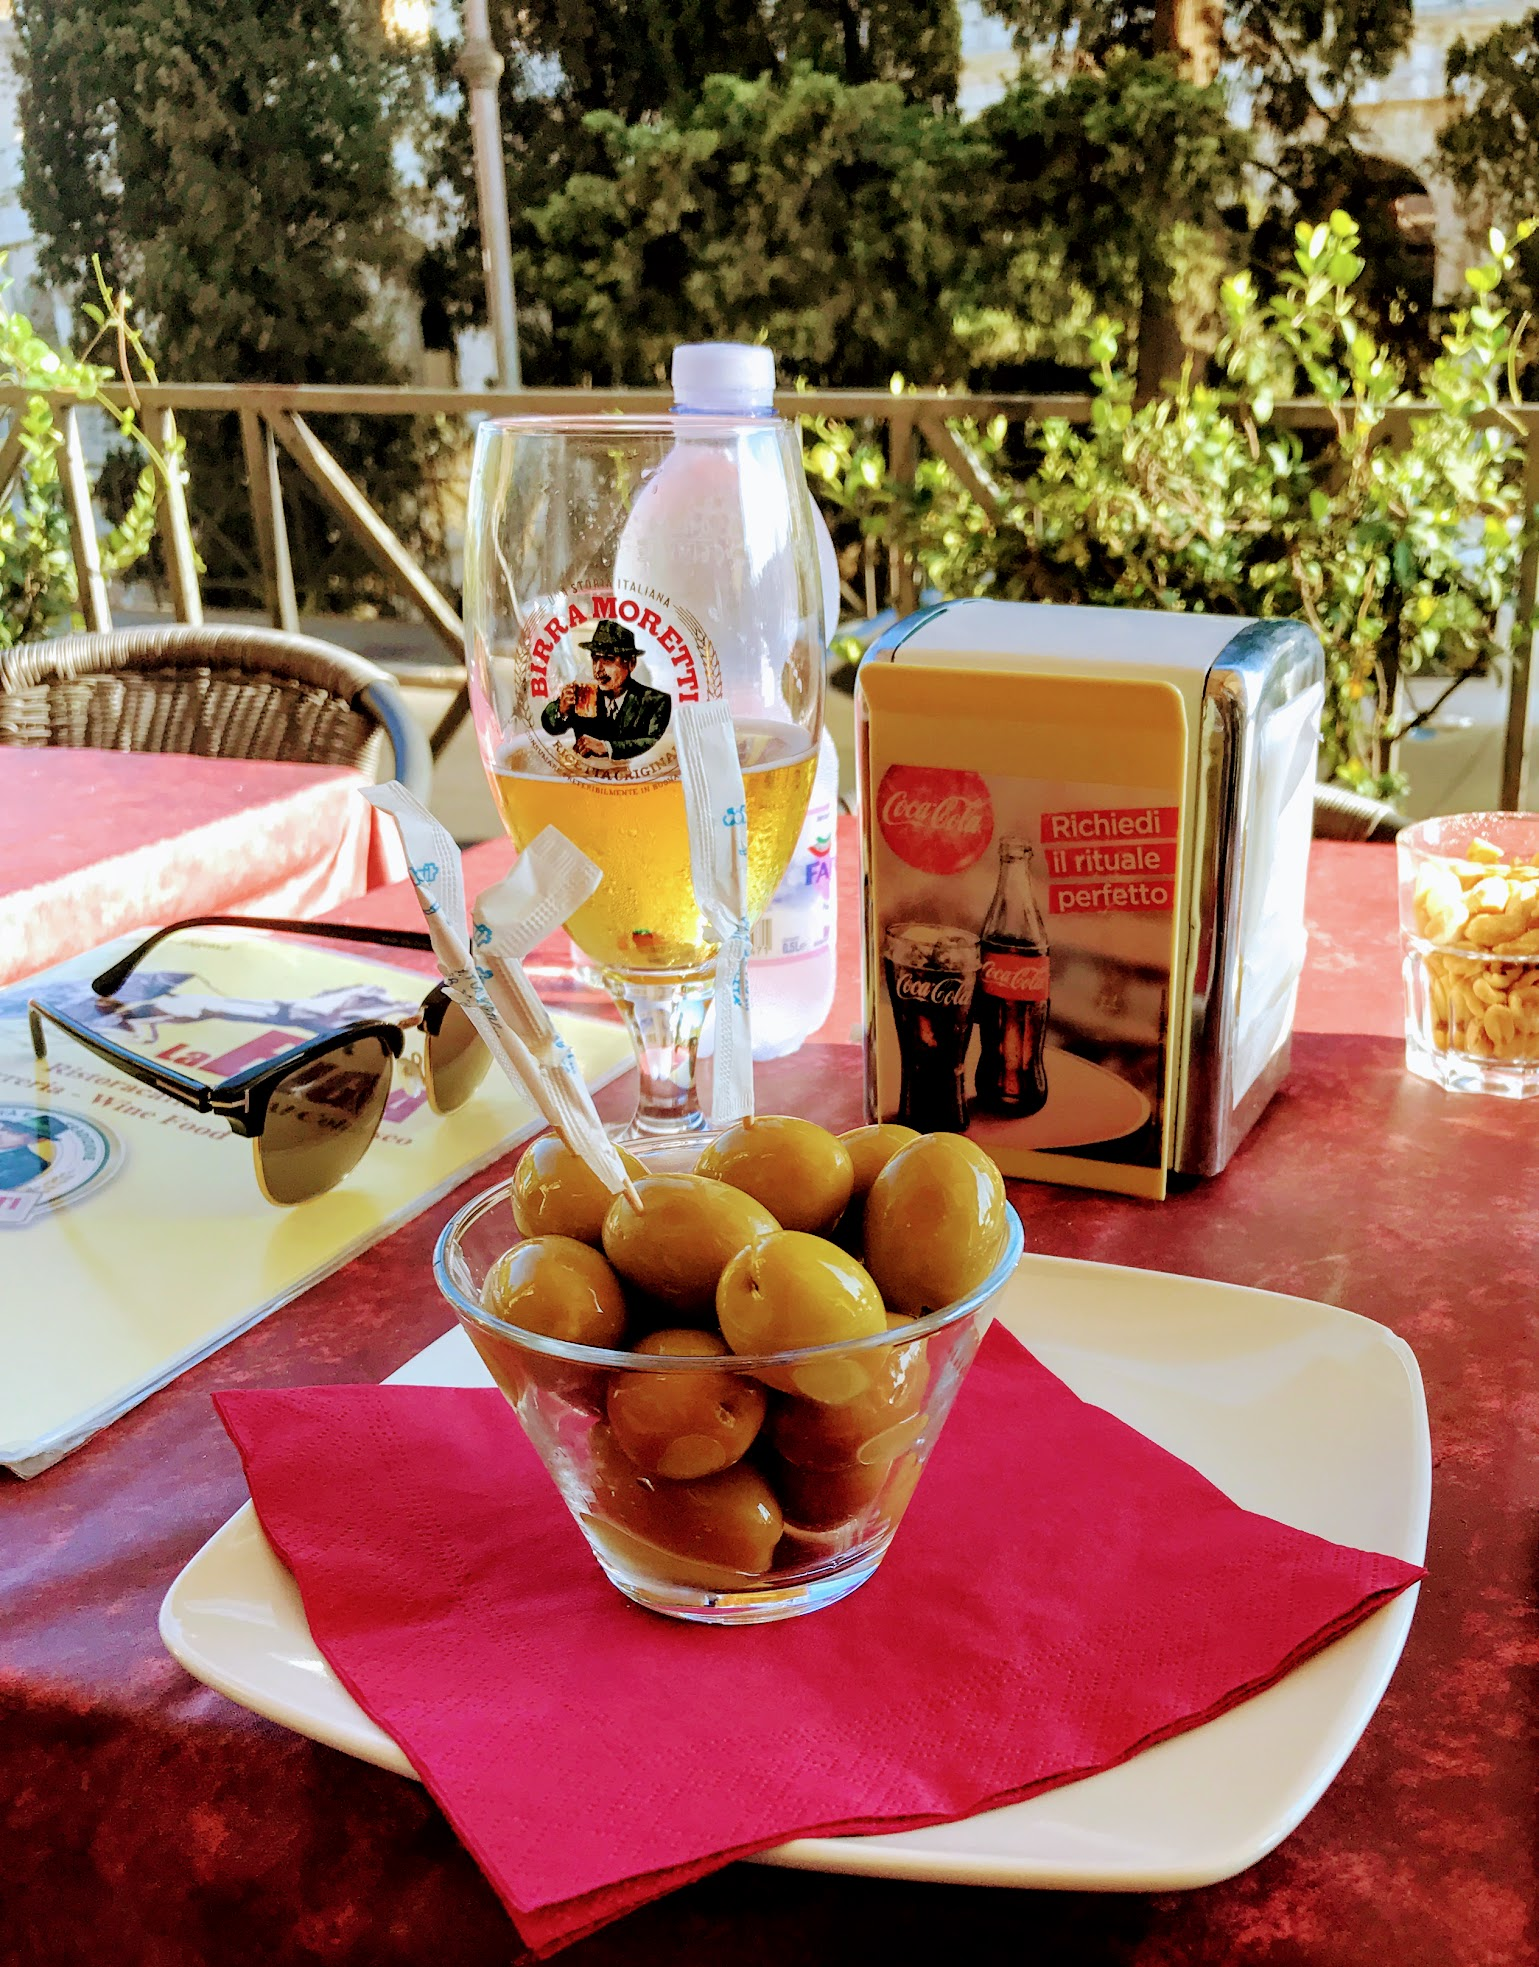 Delicious Olives, Rome